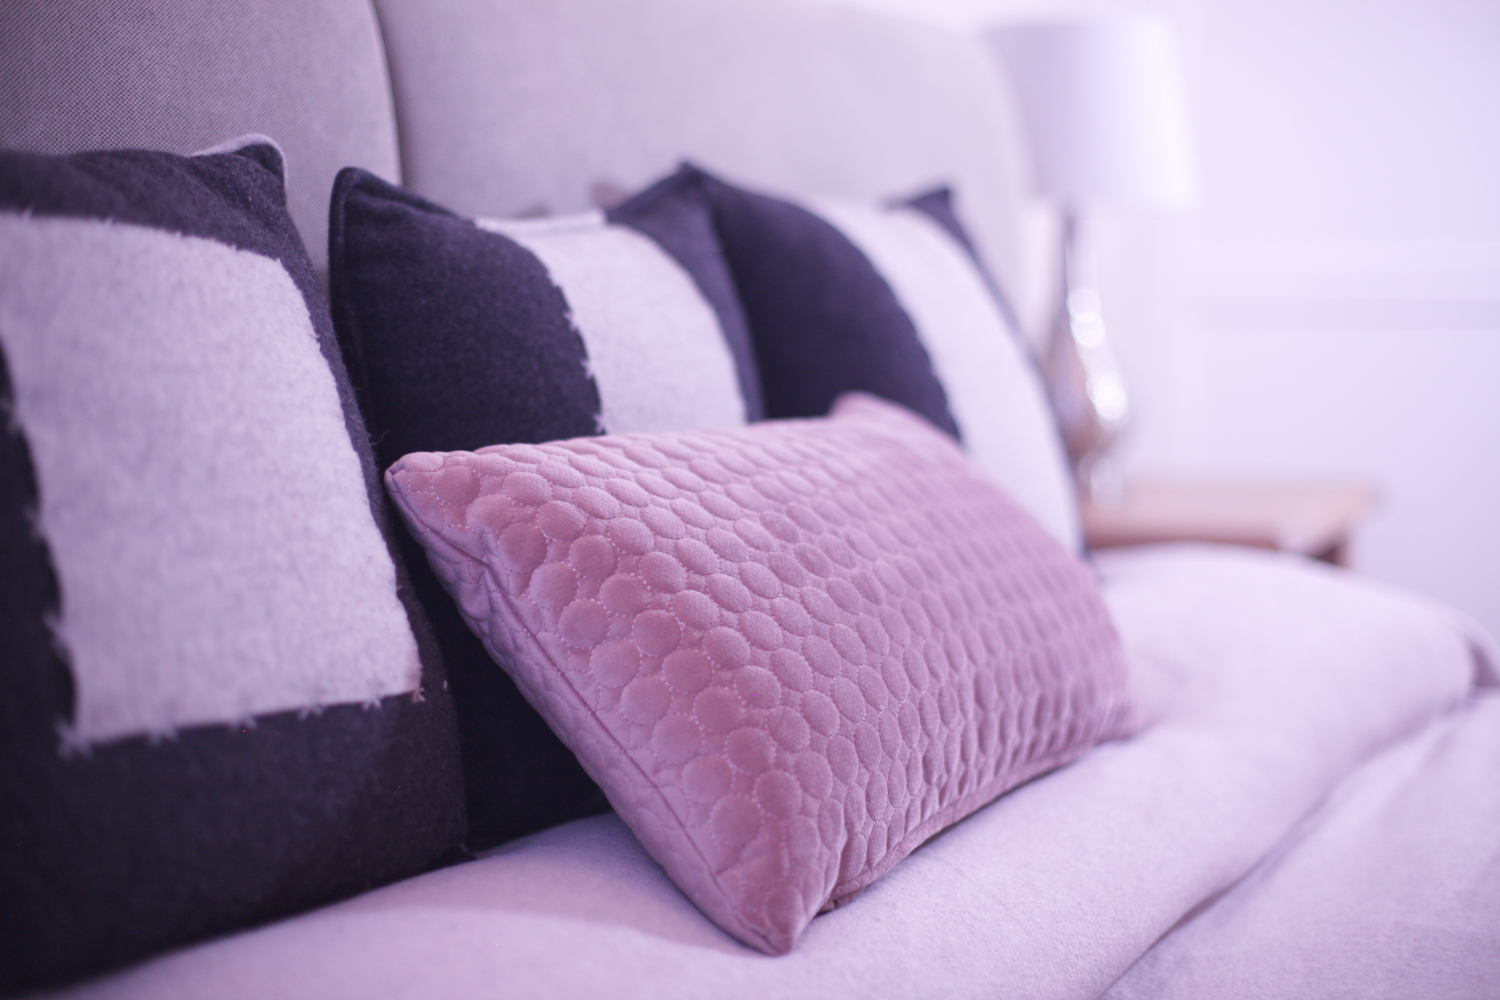 Cushions echo the seat material